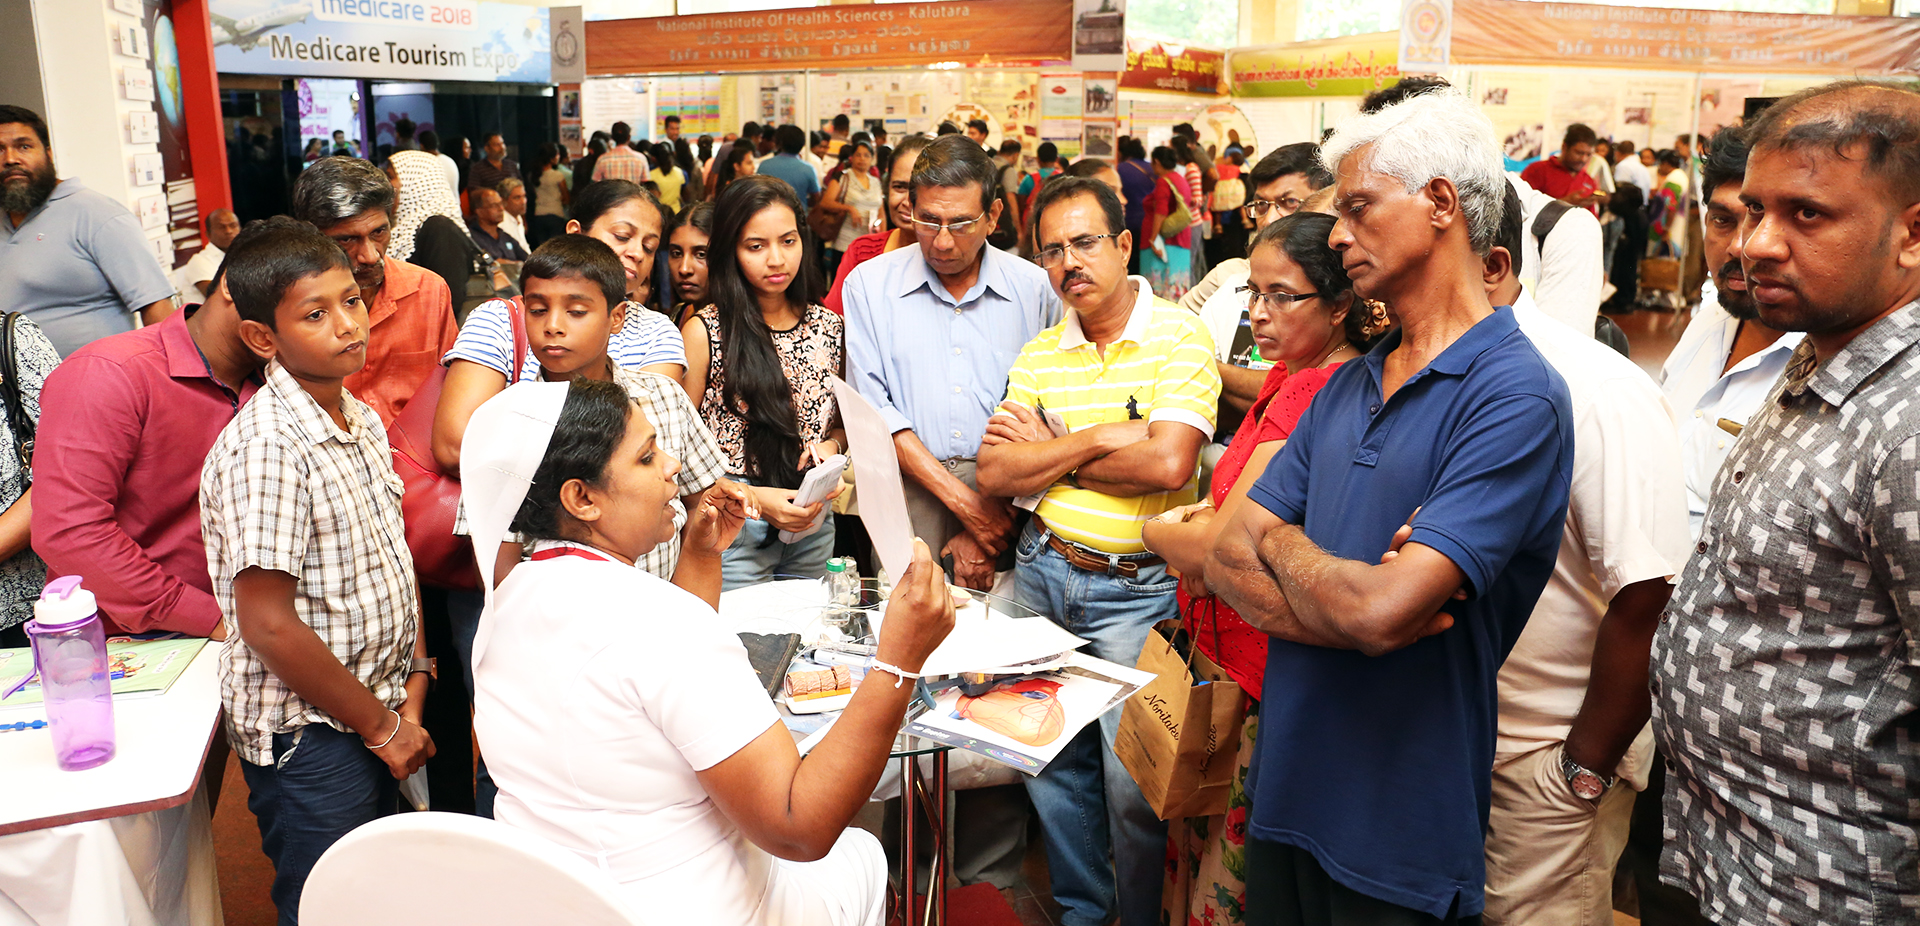 Medical Tourism ExhibitionsGlobal Fairs